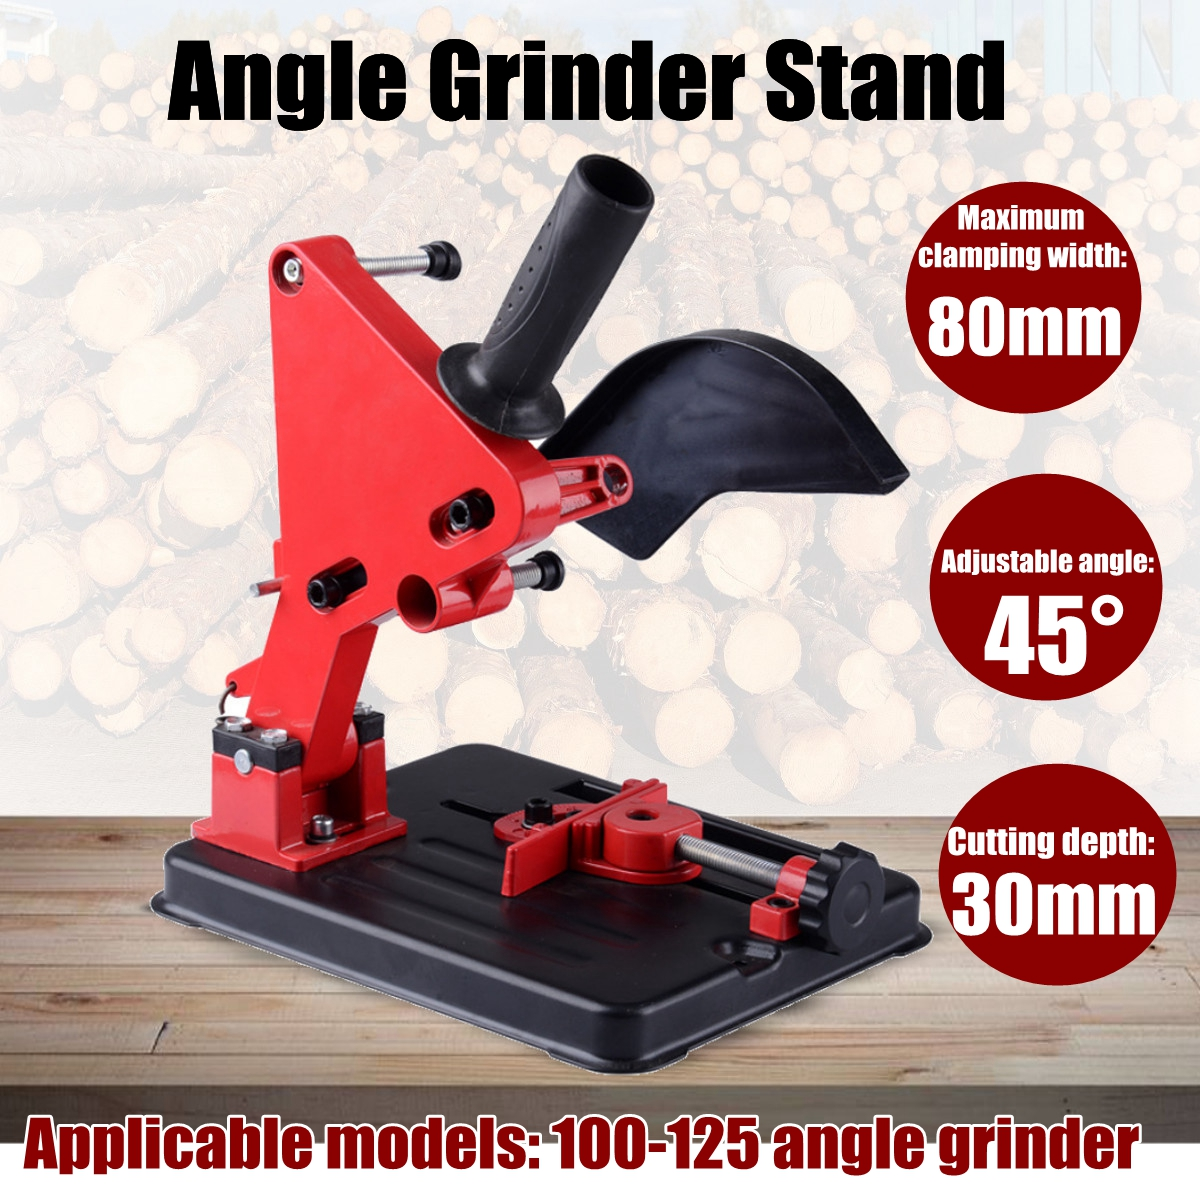 Angle Grinder Accessories Angle Grinder Holder Woodworking Tool DIY Cutting Stand Grinder Support Dremel Power Tools Accessories hoomall angle grinder dedicated cutting seat stand machine bracket rod table cover shield safety woodworking tools accessories